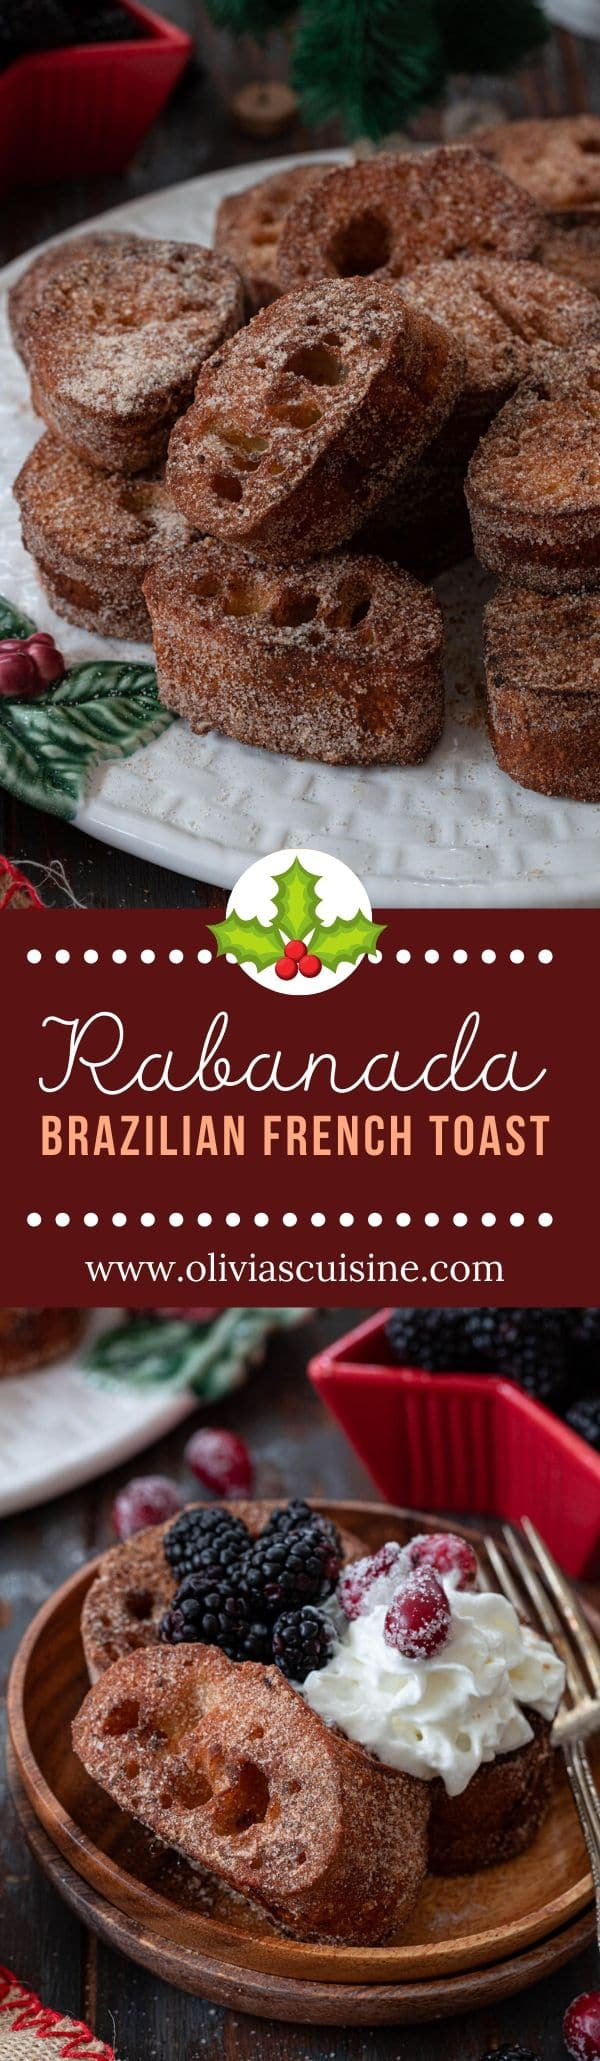 Rabanada (Brazilian French Toast) | www.oliviascuisine.com | Christmas morning means a platter of Rabanada in Brazil. But this unique French toast recipe is so delicious that you'll want to make it all year long! (Follow @oliviascuisine for more delicious recipes.) #rabanada #frenchtoast #christmas #breakfast #brunch #brazilianfood